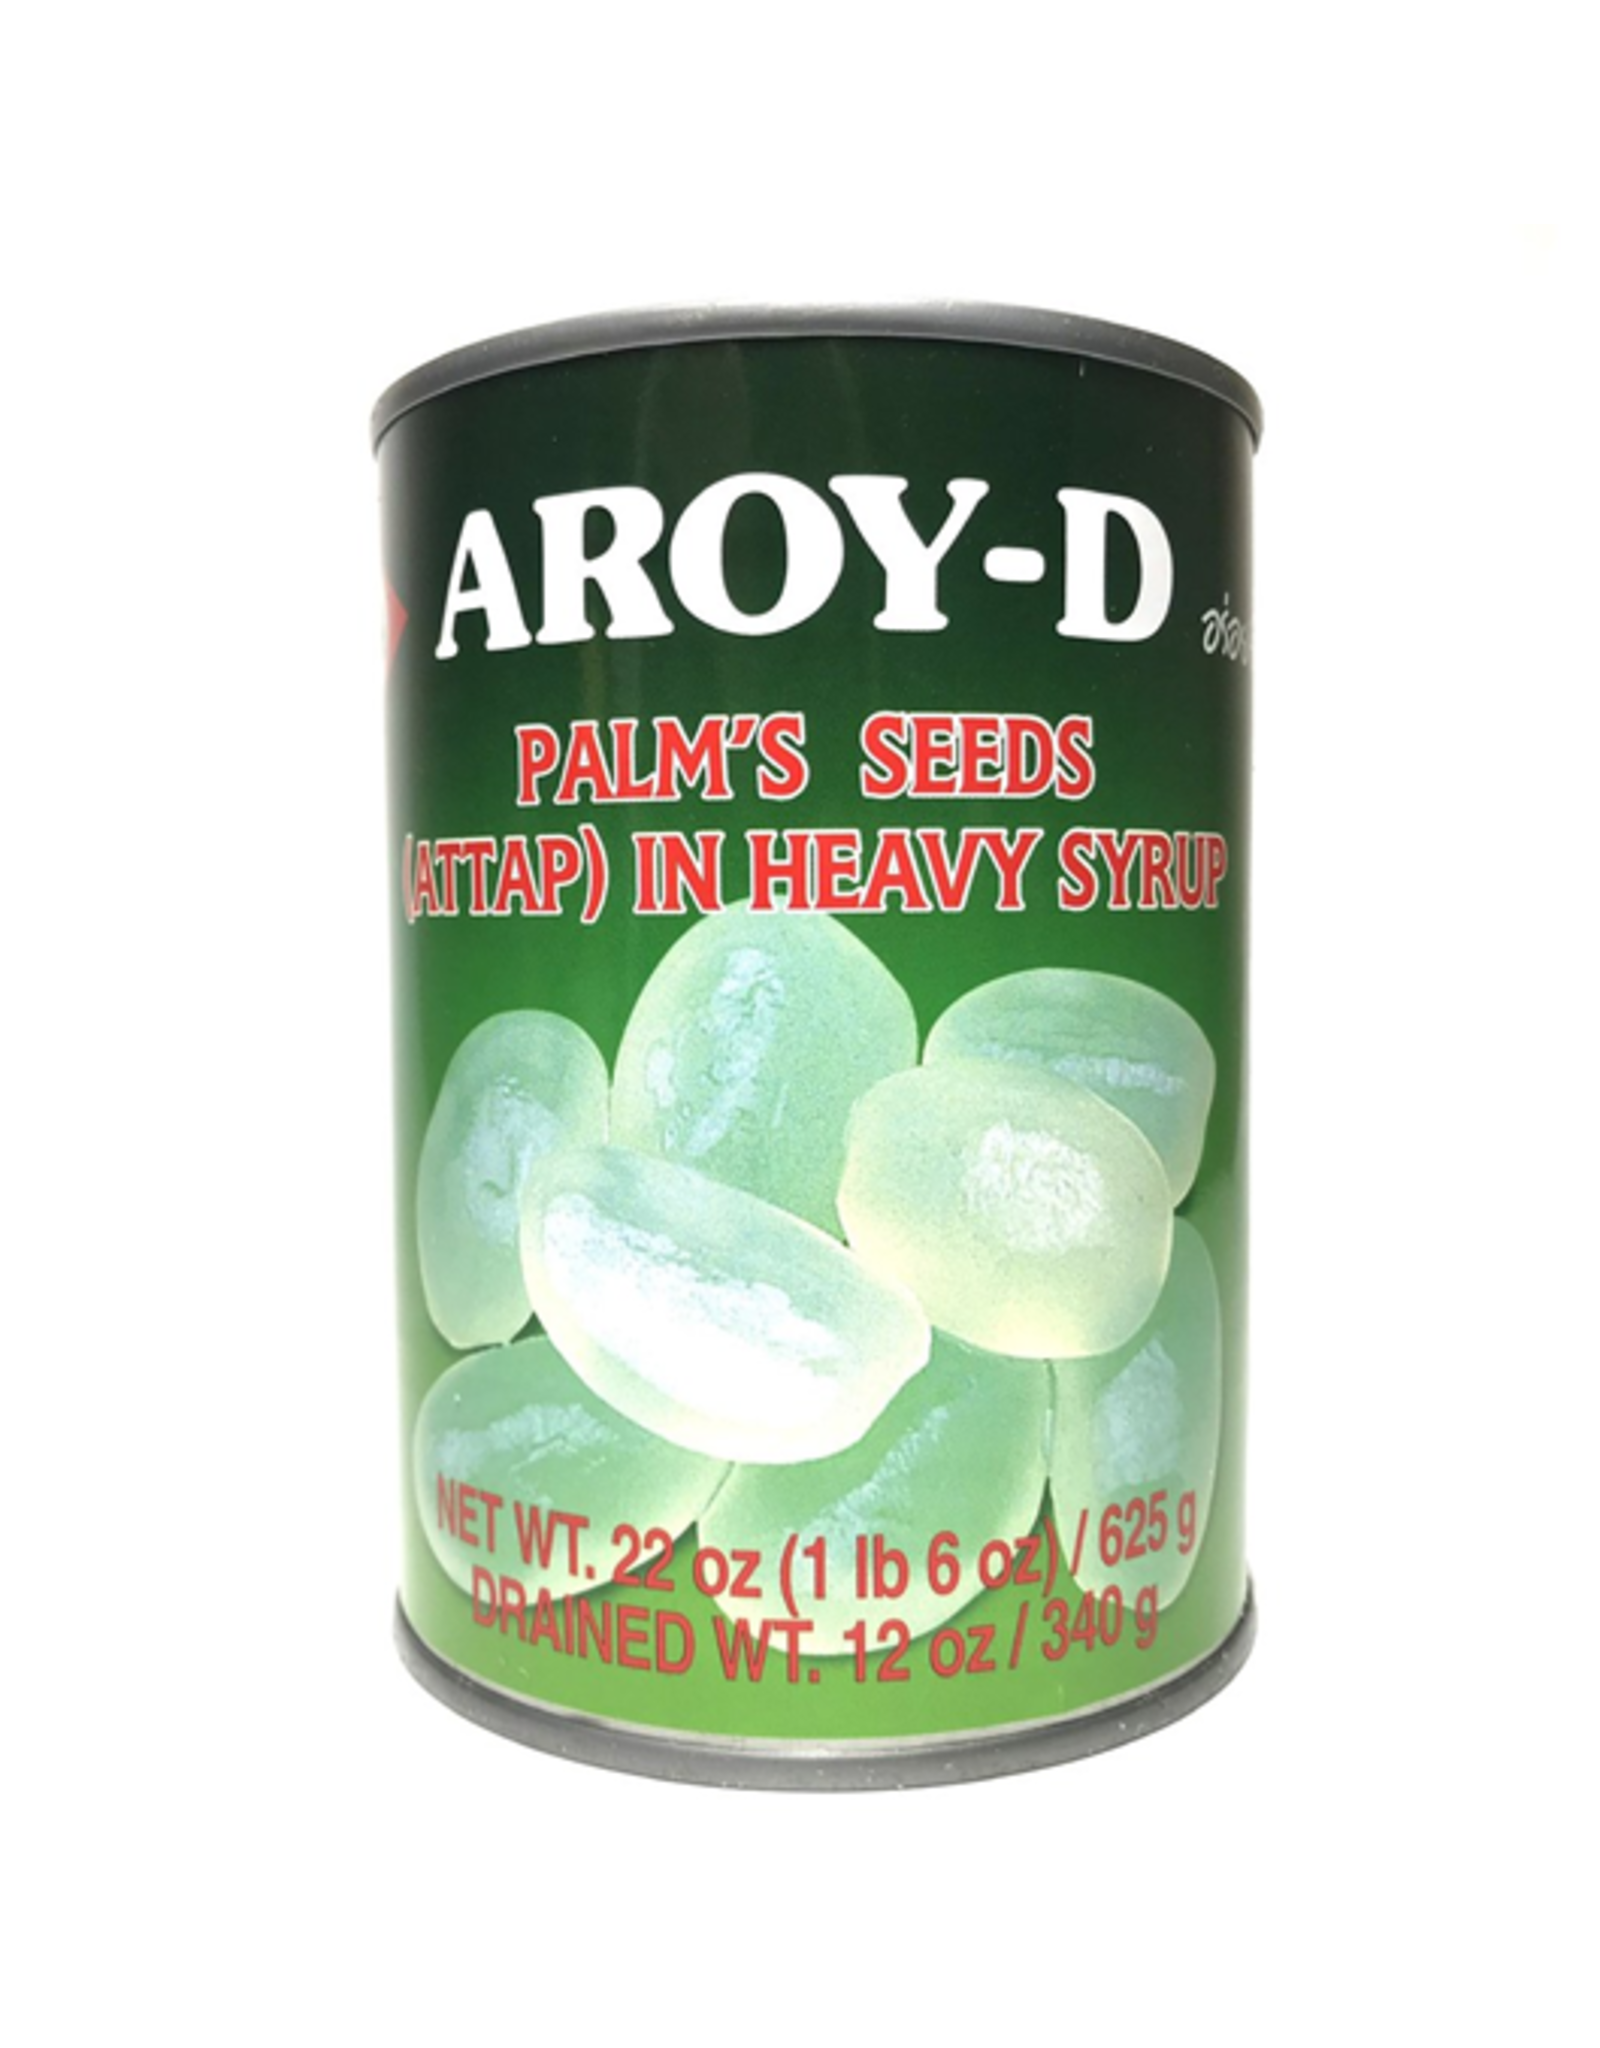 Aroy-D Attap Palm Seed in Syrup